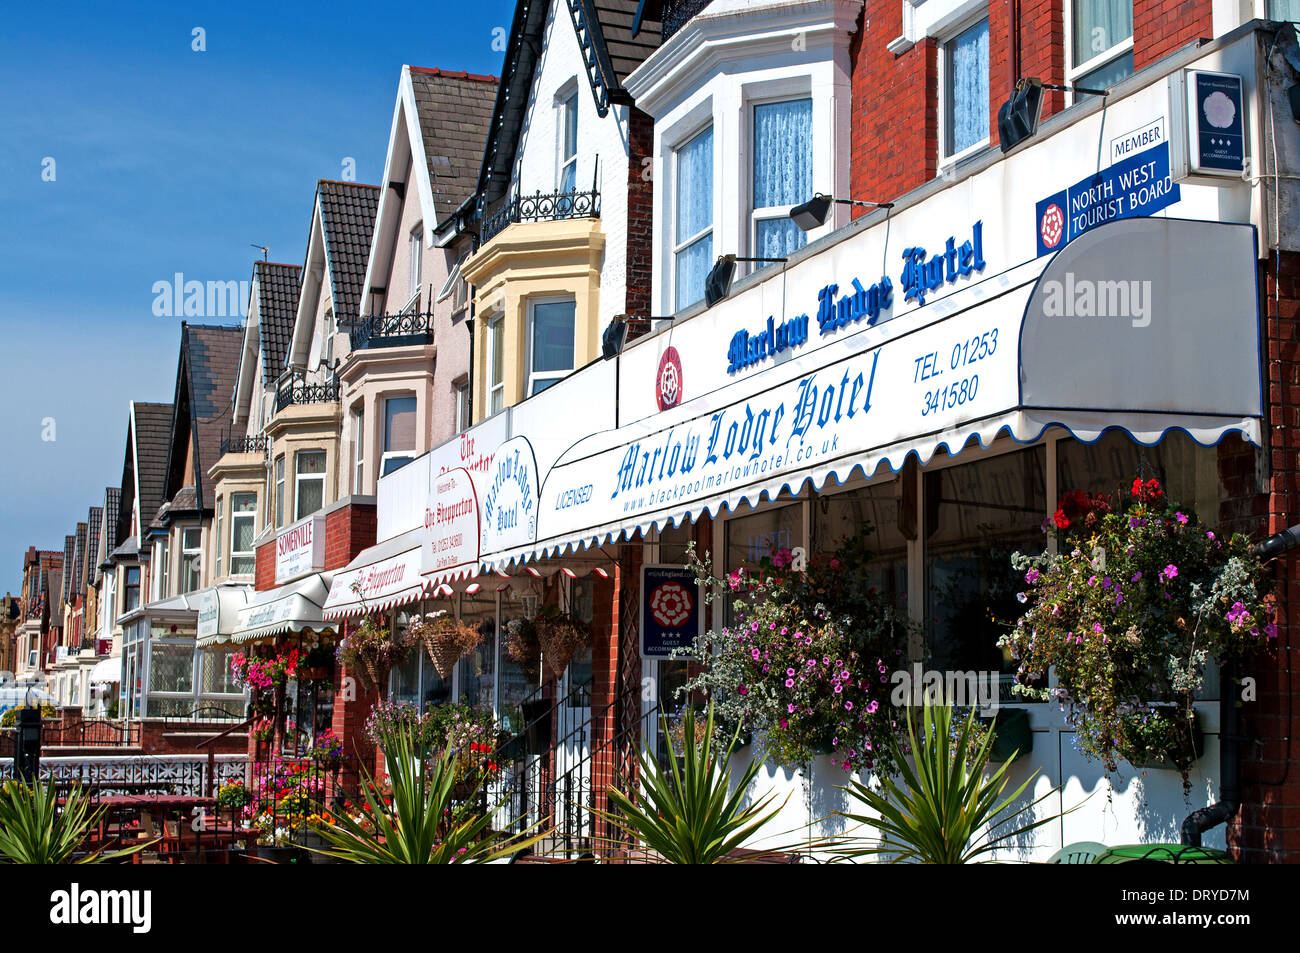 hotels and bed breakfast establishments in Blackpool, UK - Stock Image